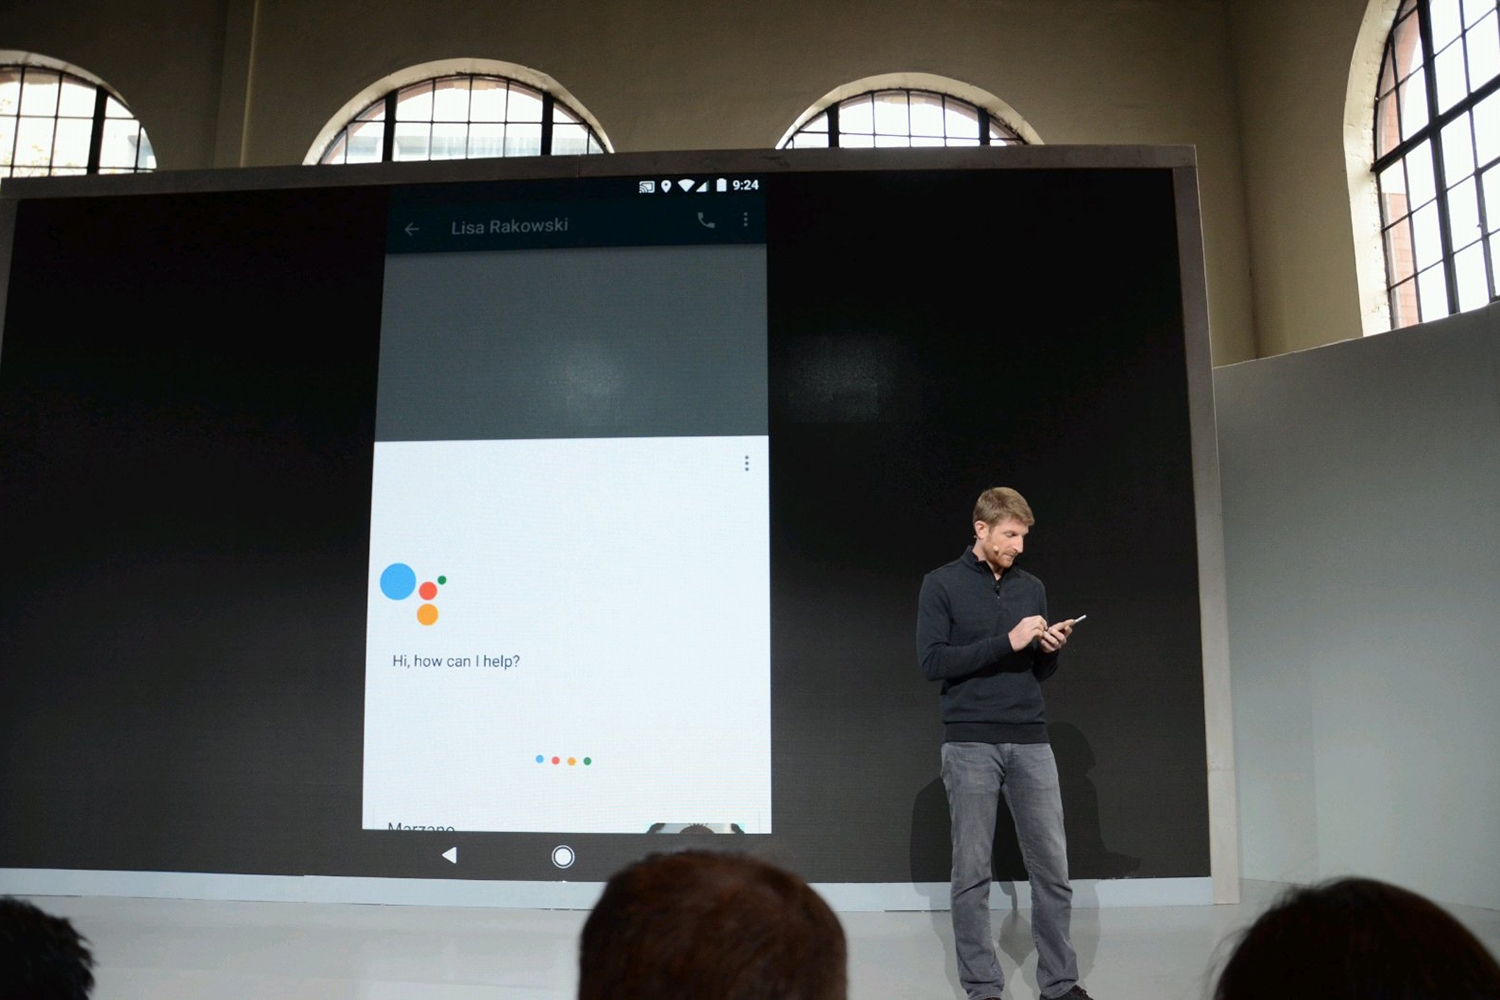 Google Assistant actions can now talk about religion, eldercare, and city services